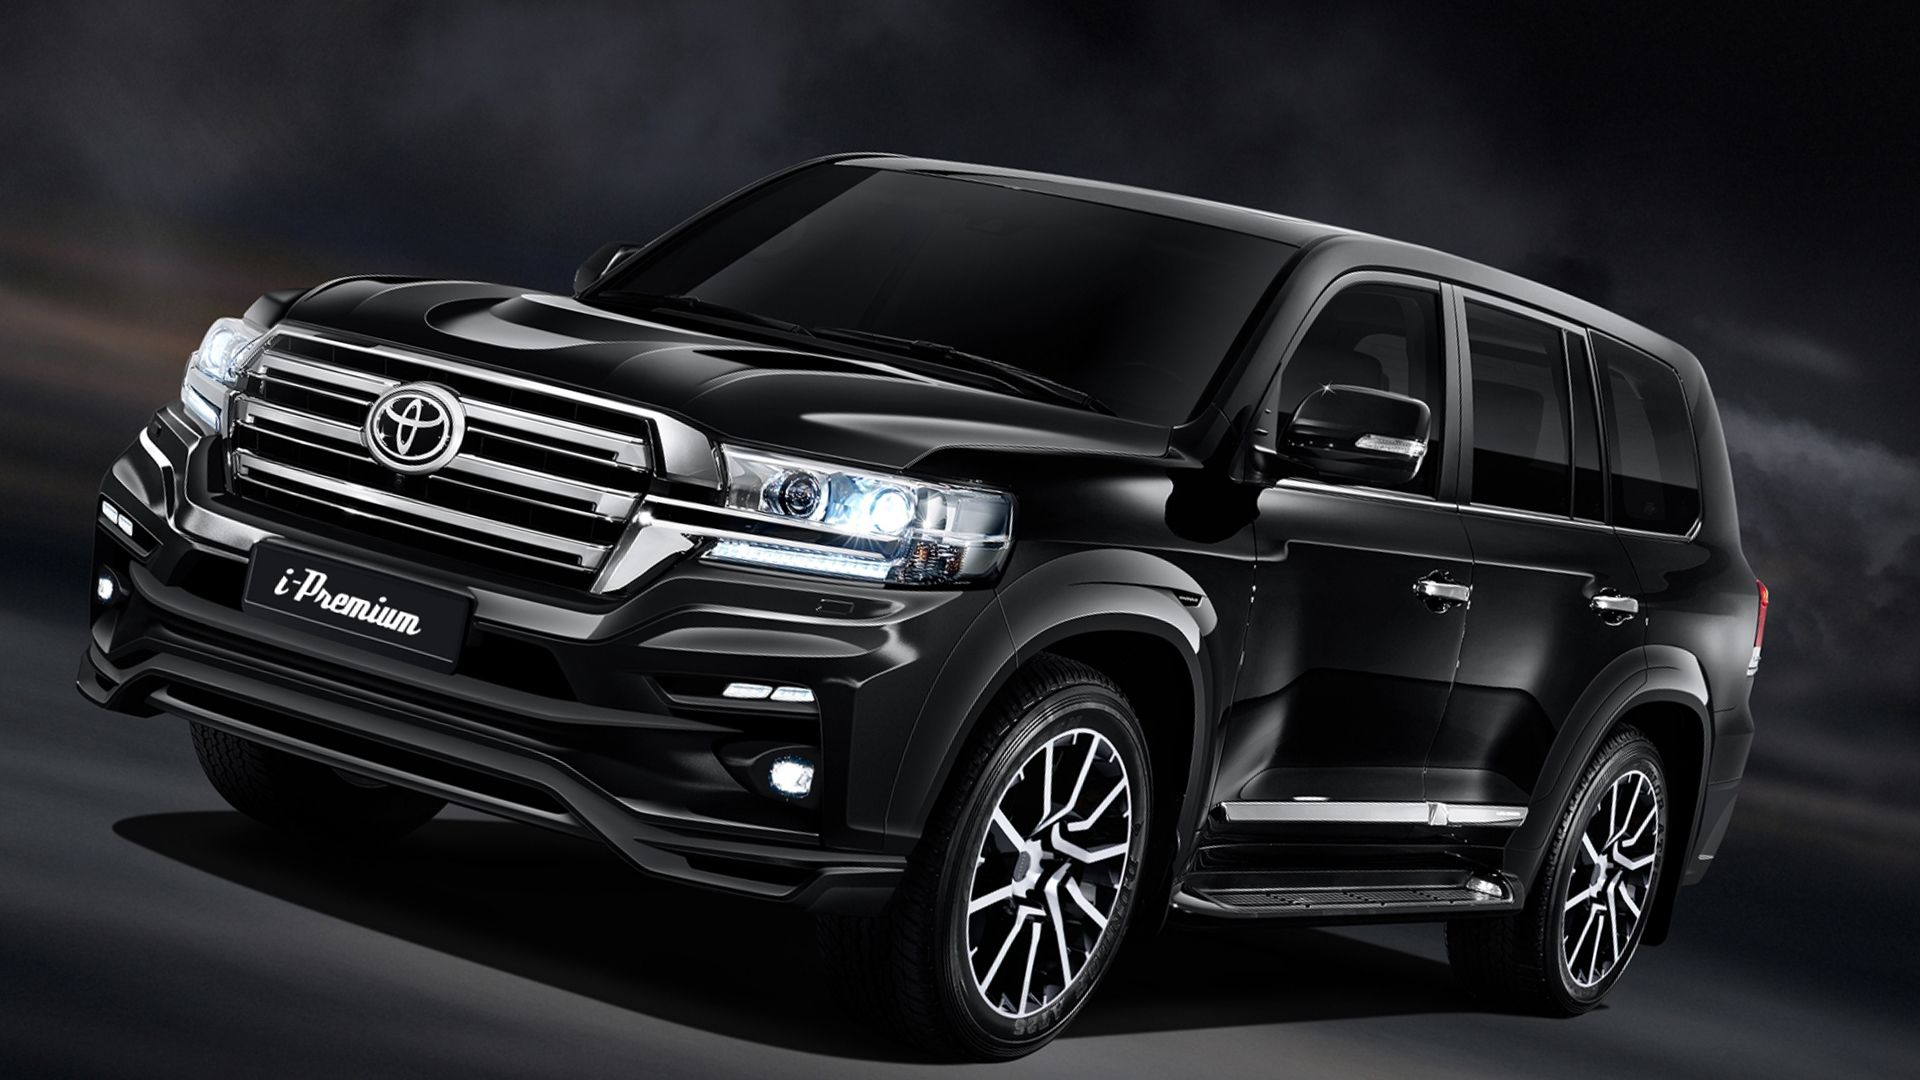 new 2019 toyota land cruiser 200 redesign toyota car prices list pinterest land cruiser 200. Black Bedroom Furniture Sets. Home Design Ideas